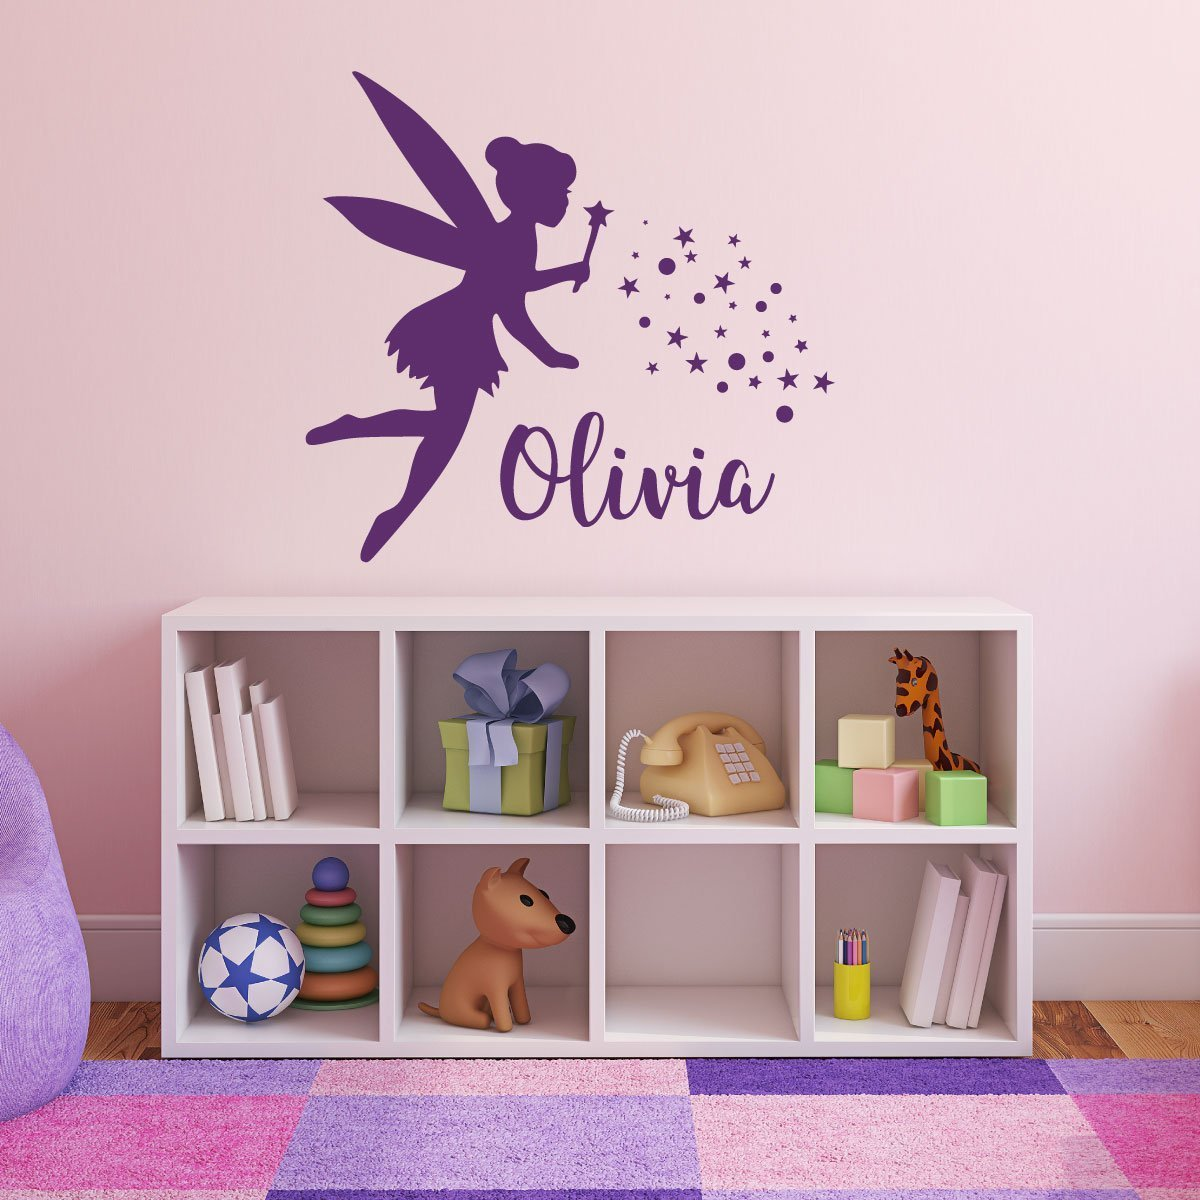 Amazon fairy wall decal with pixie dust personalized vinyl amazon fairy wall decal with pixie dust personalized vinyl sticker for girls room available in pink purple other colors home decor for nursery amipublicfo Images